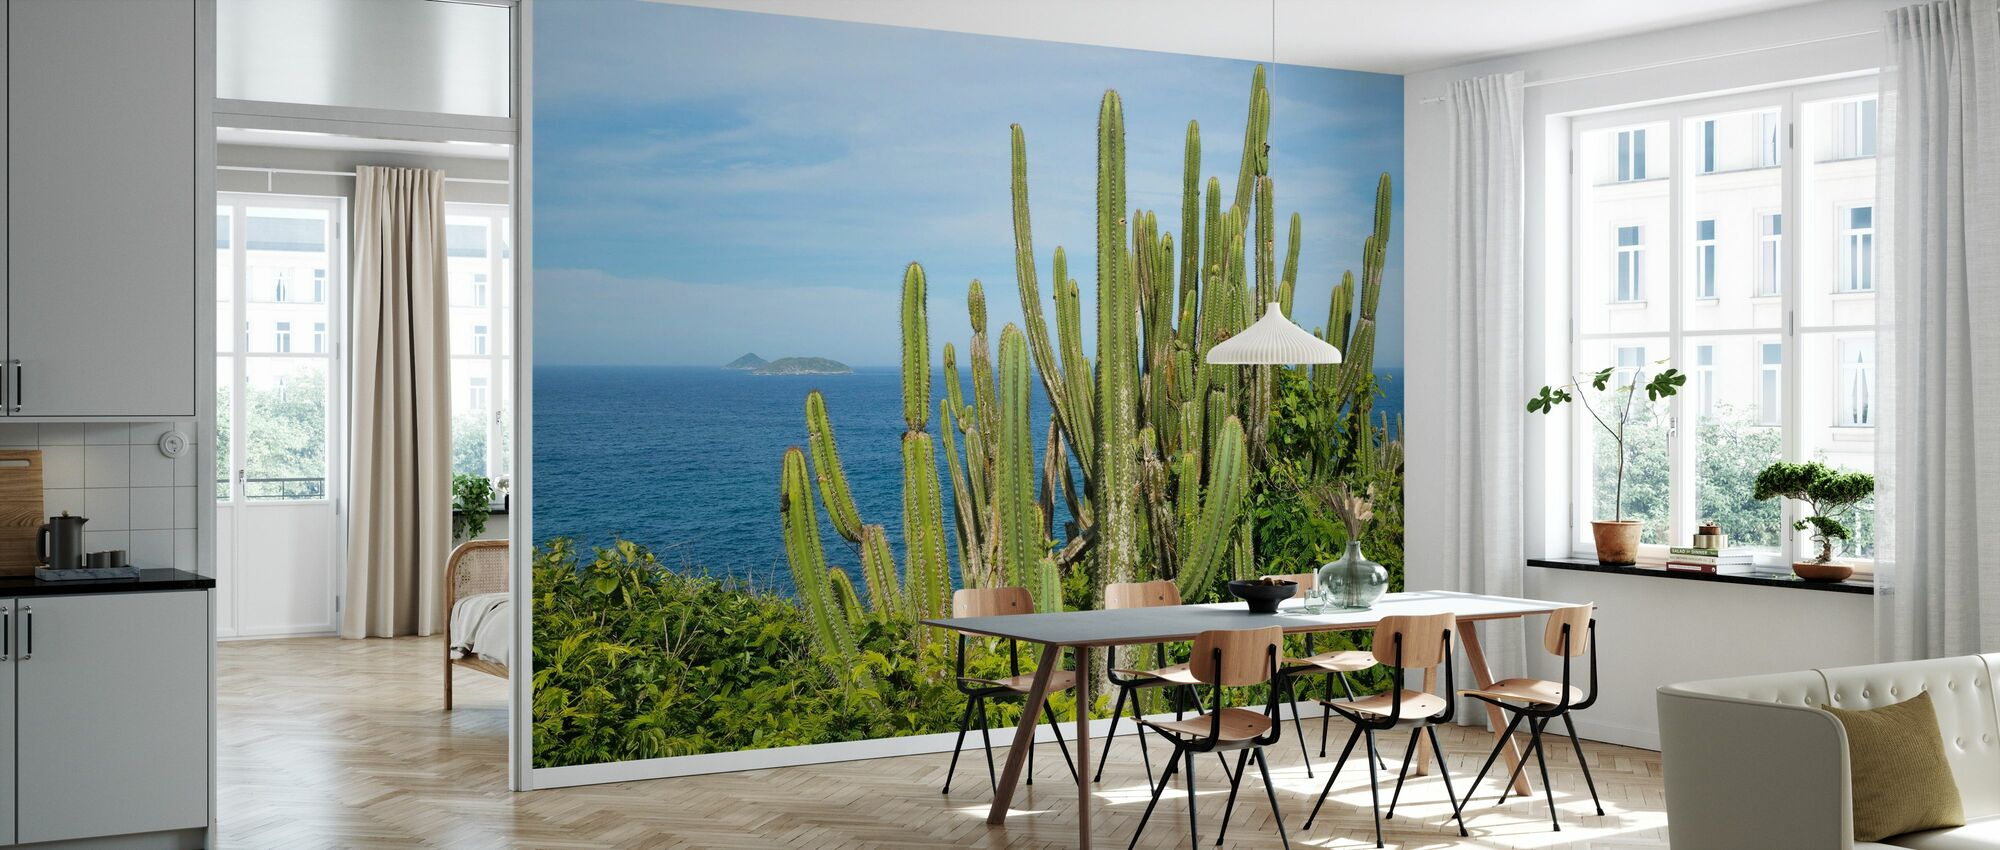 Cactus with a View - Wallpaper - Kitchen